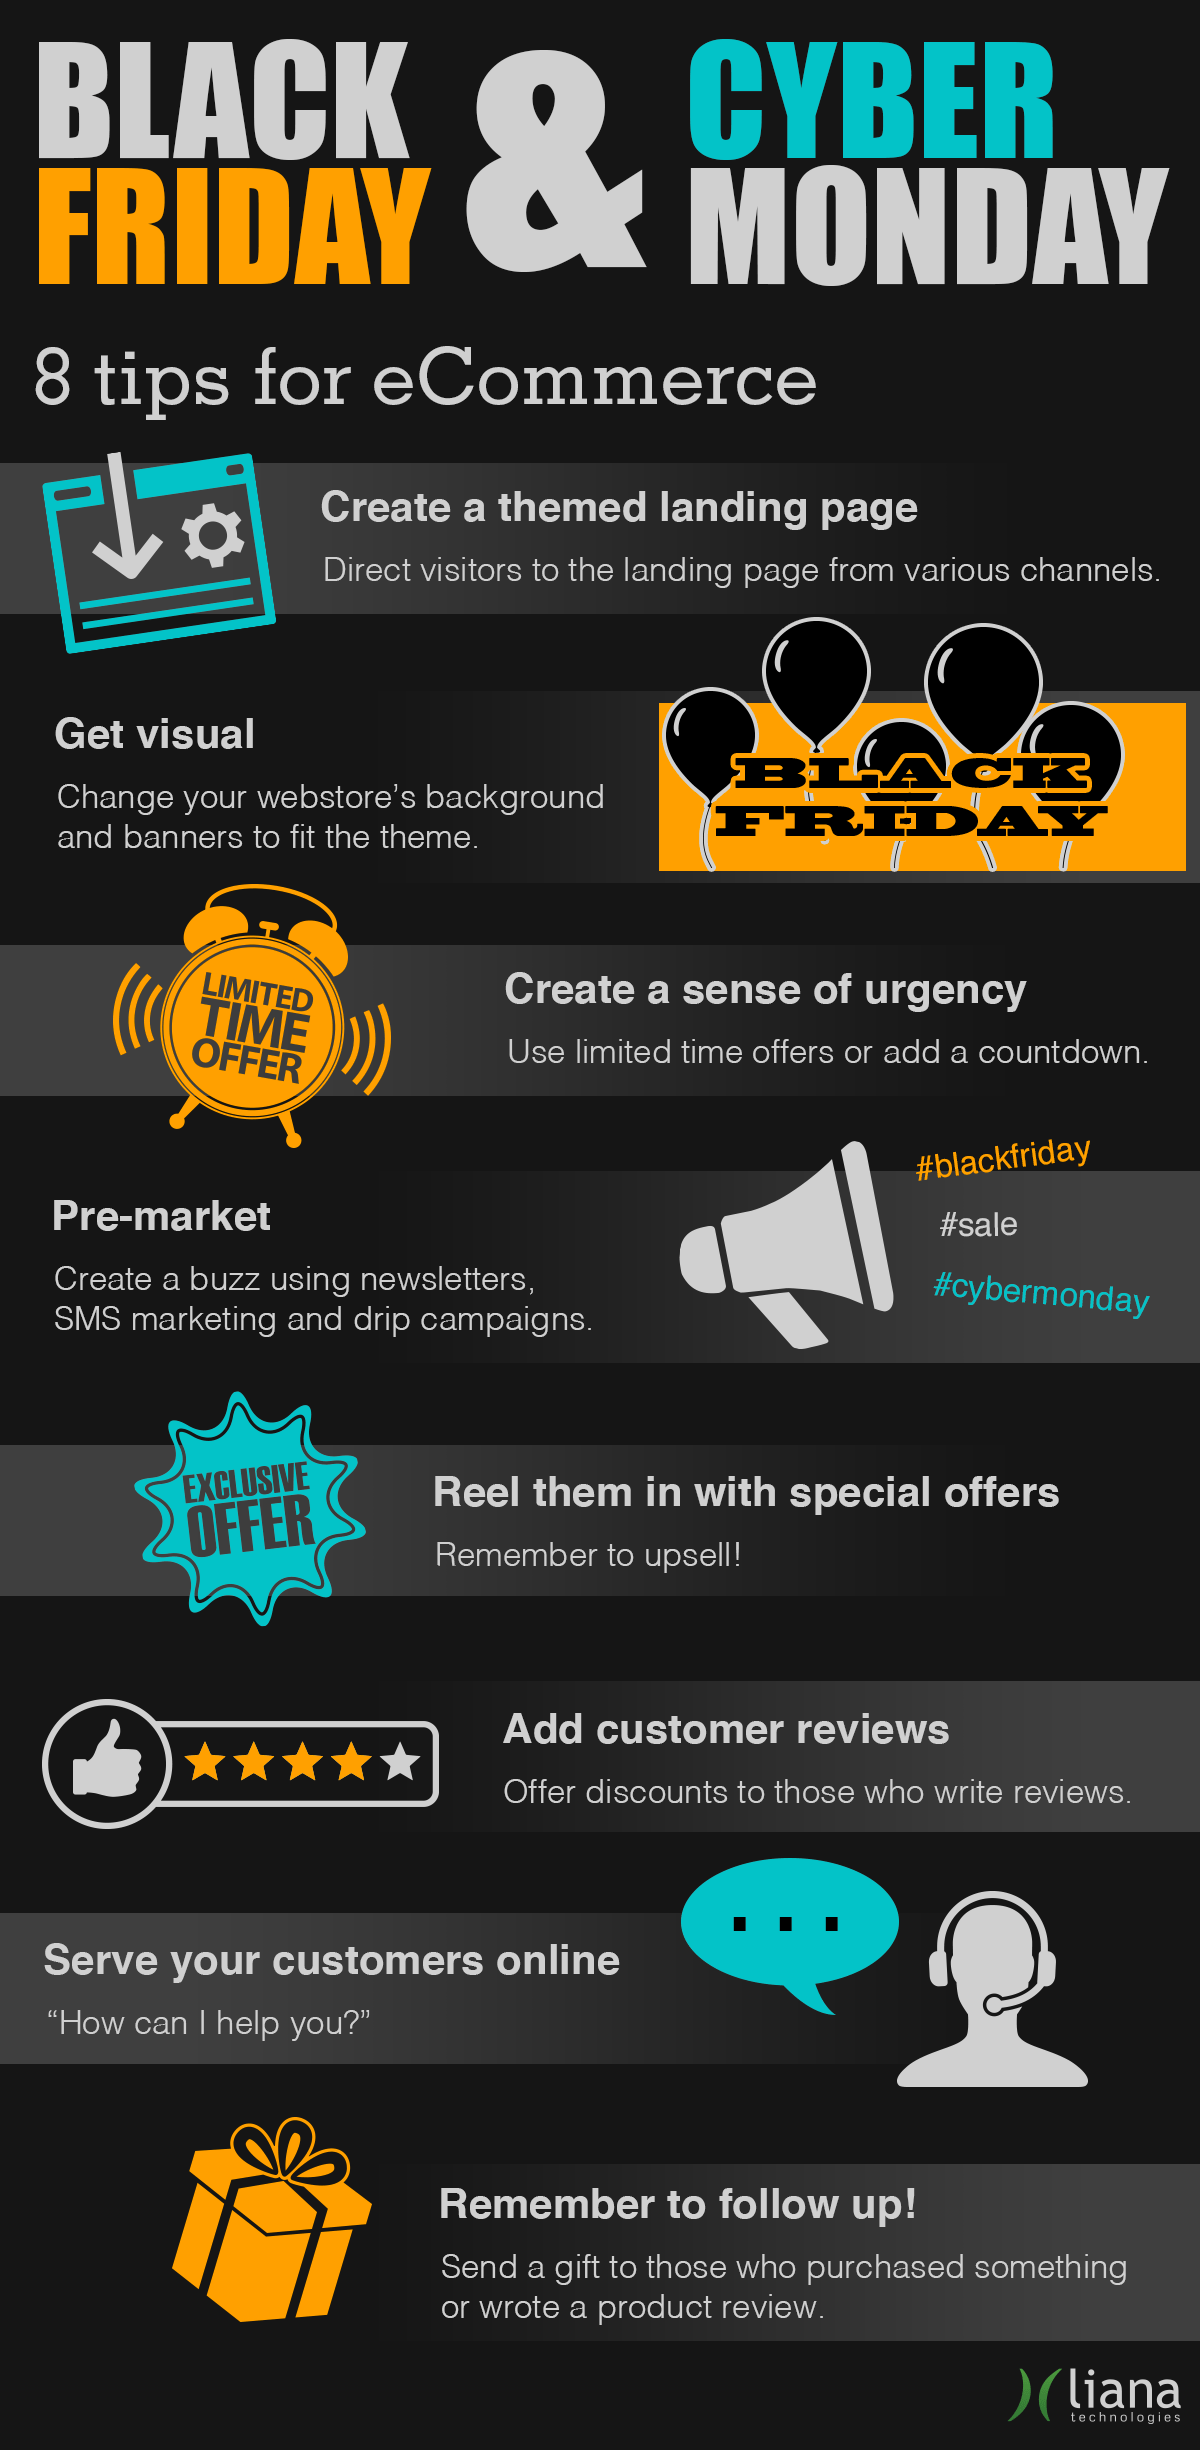 Www Black Friday Black Friday And Cyber Monday Tips For Ecommerce Infographic